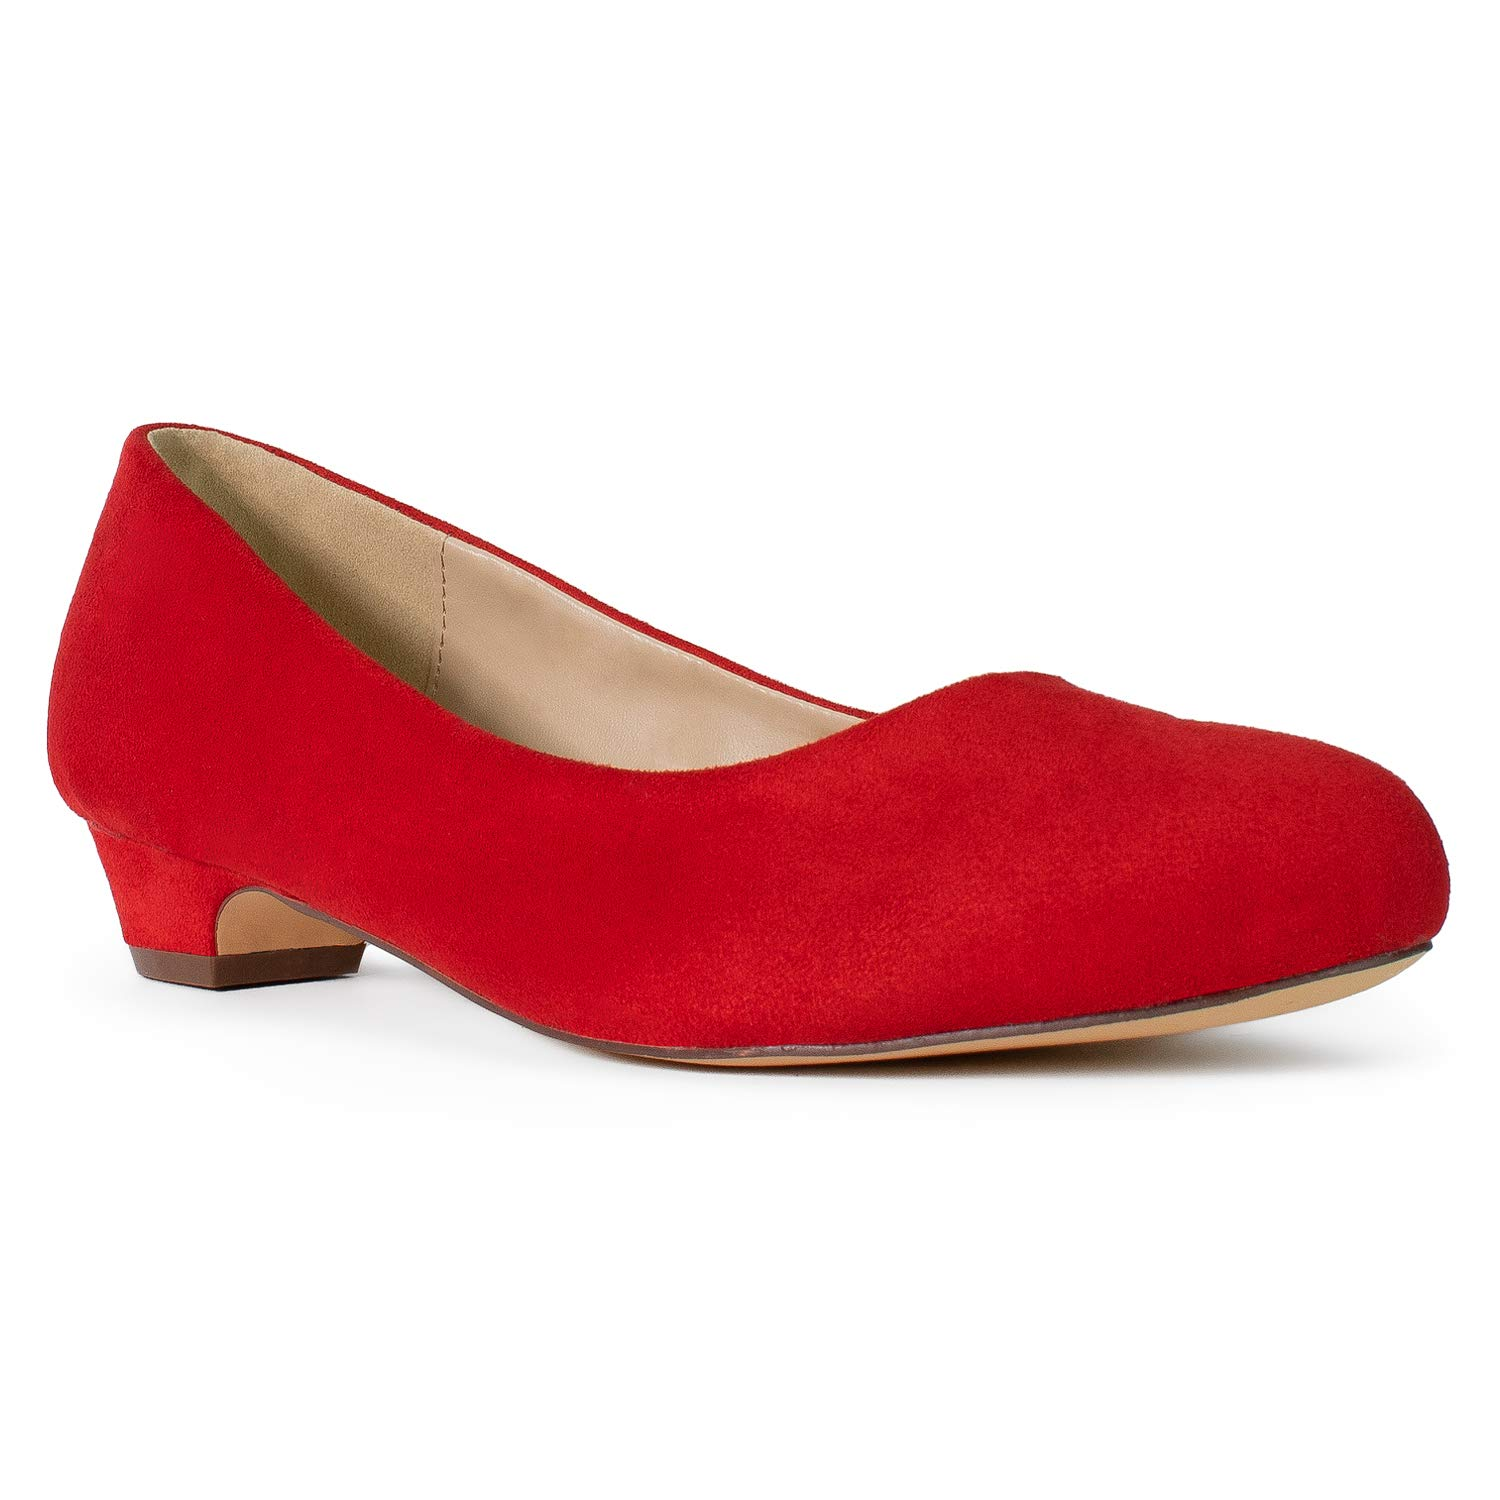 Red Su (Extra Wide. One Full Size Larger Than Regular Fit) RF ROOM OF FASHION Women's Wide Fit Kitten Low Heel Extra Cushion Pumps Flats (True Wide Width)